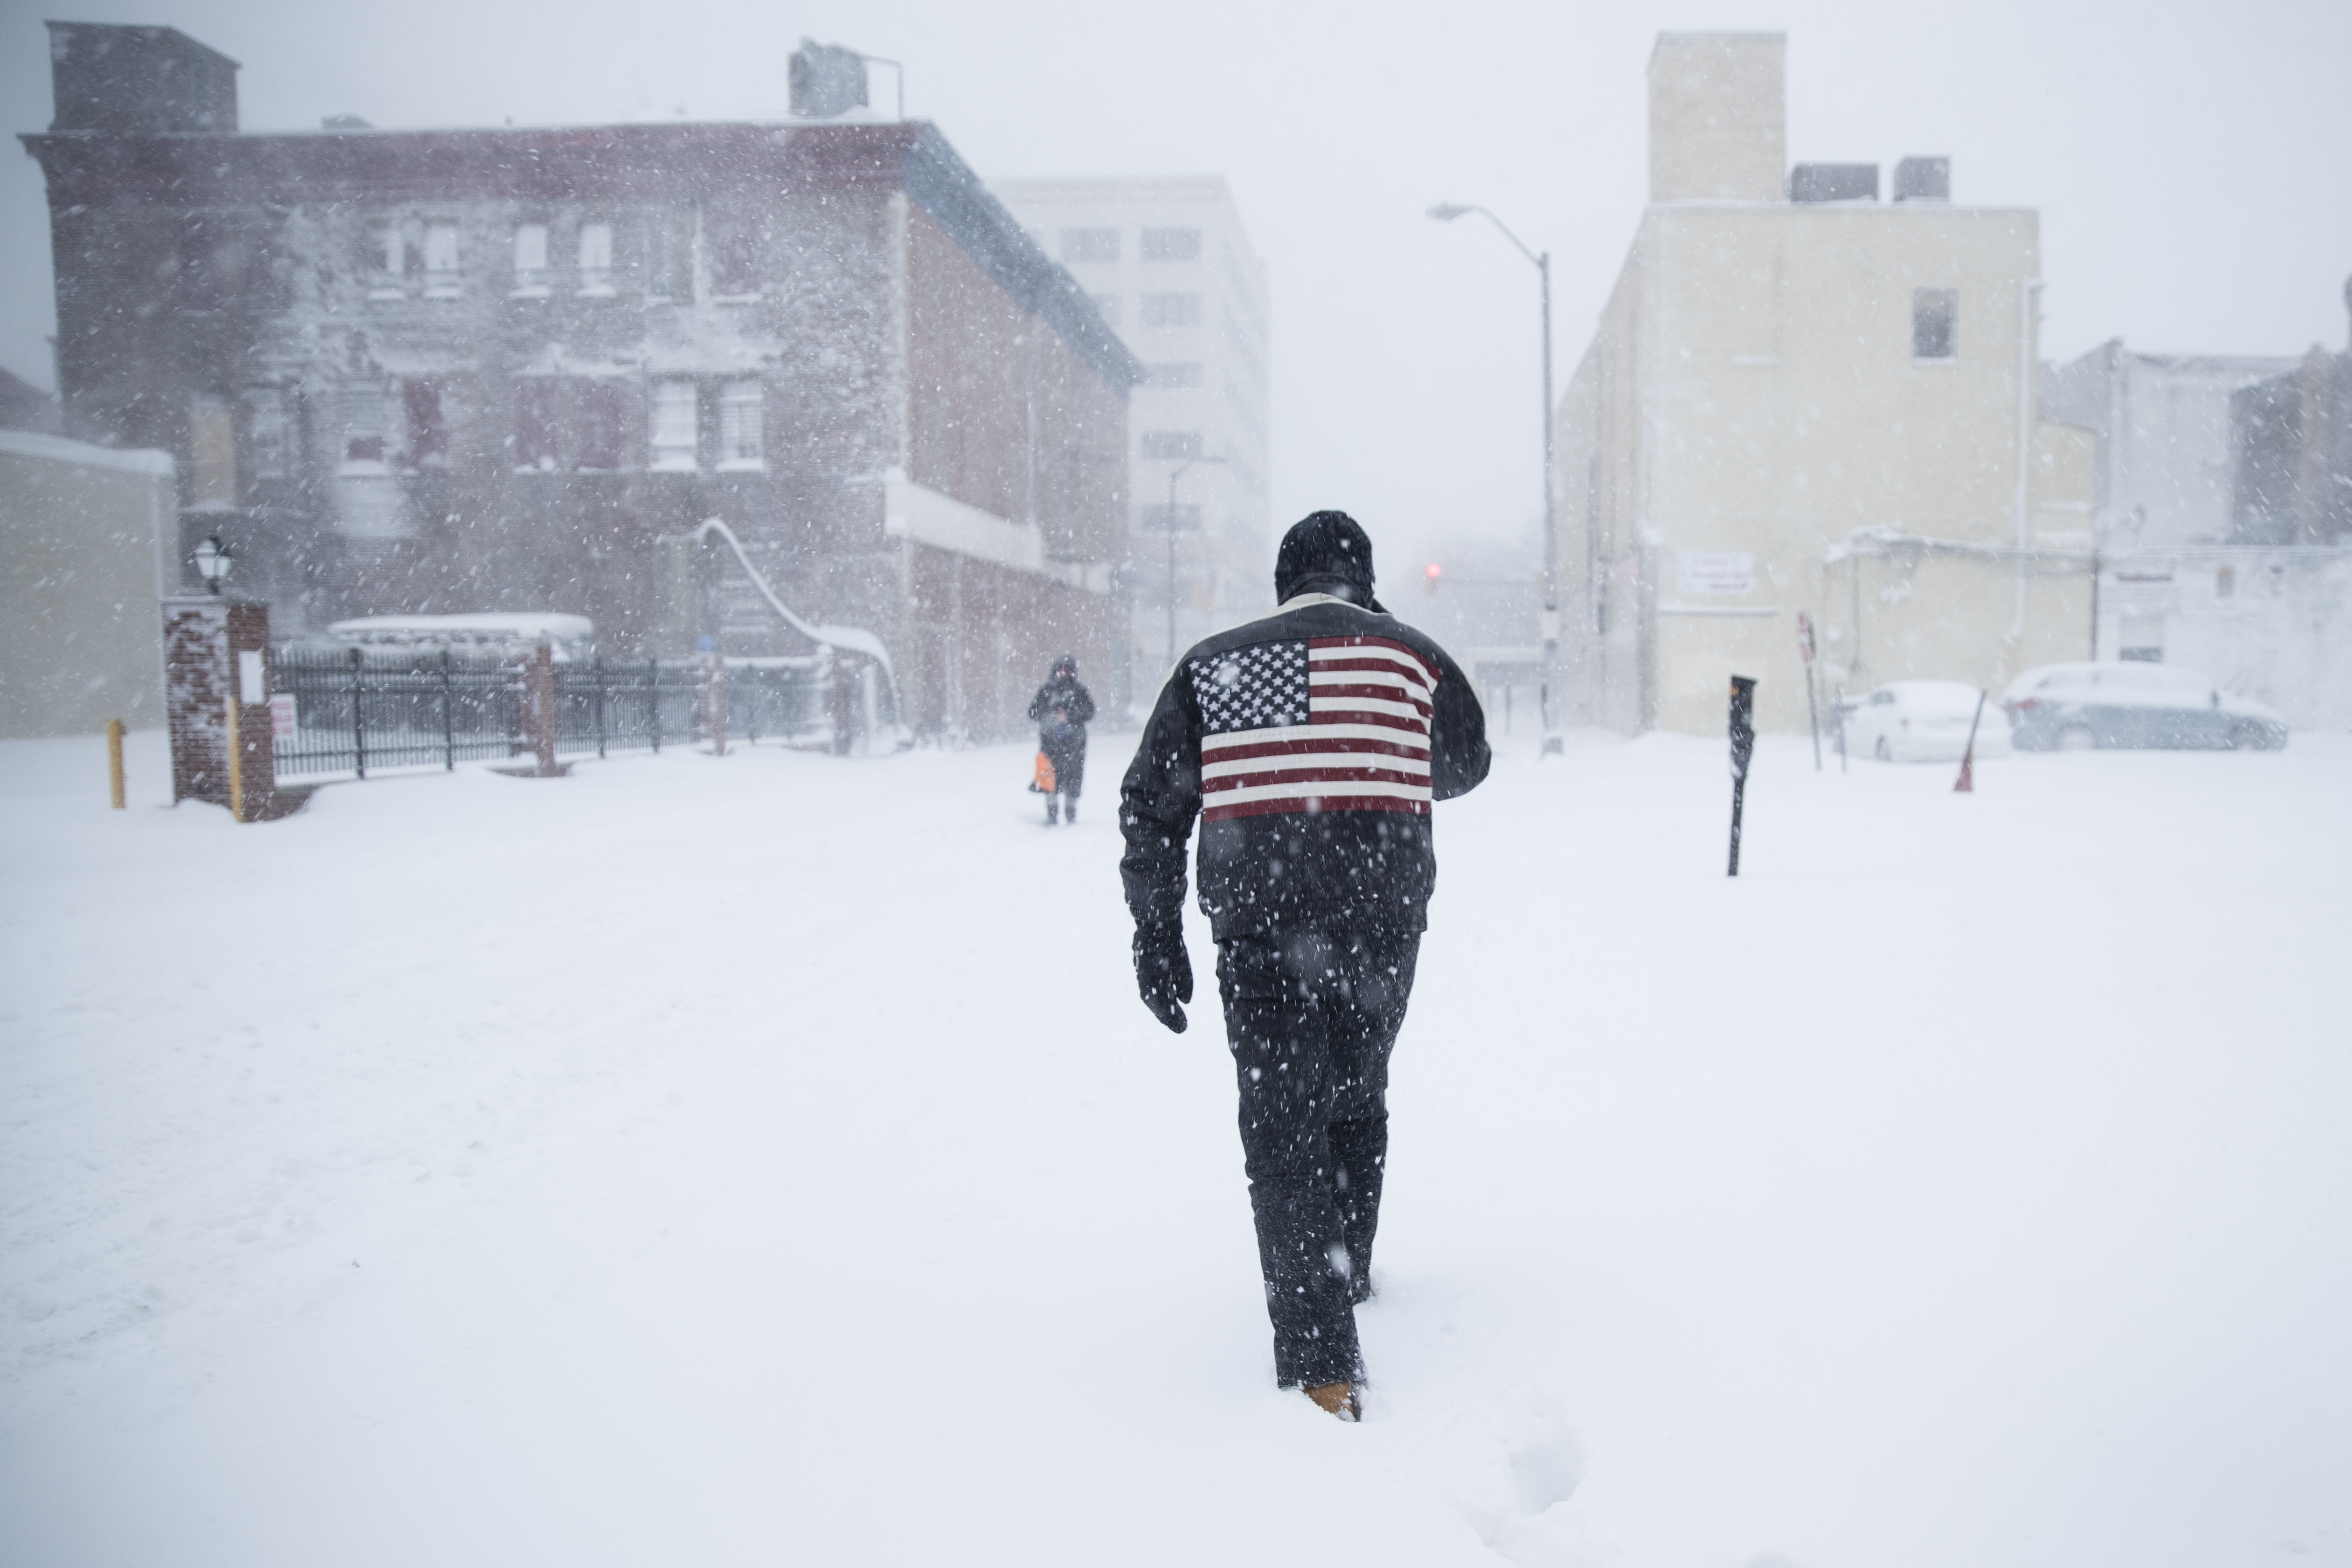 "<div class=""meta image-caption""><div class=""origin-logo origin-image none""><span>none</span></div><span class=""caption-text"">A man pushes his way through a winter snowstorm in Atlantic City, N.J., Thursday, Jan. 4, 2018.  (AP Photo/Matt Rourke) (AP)</span></div>"